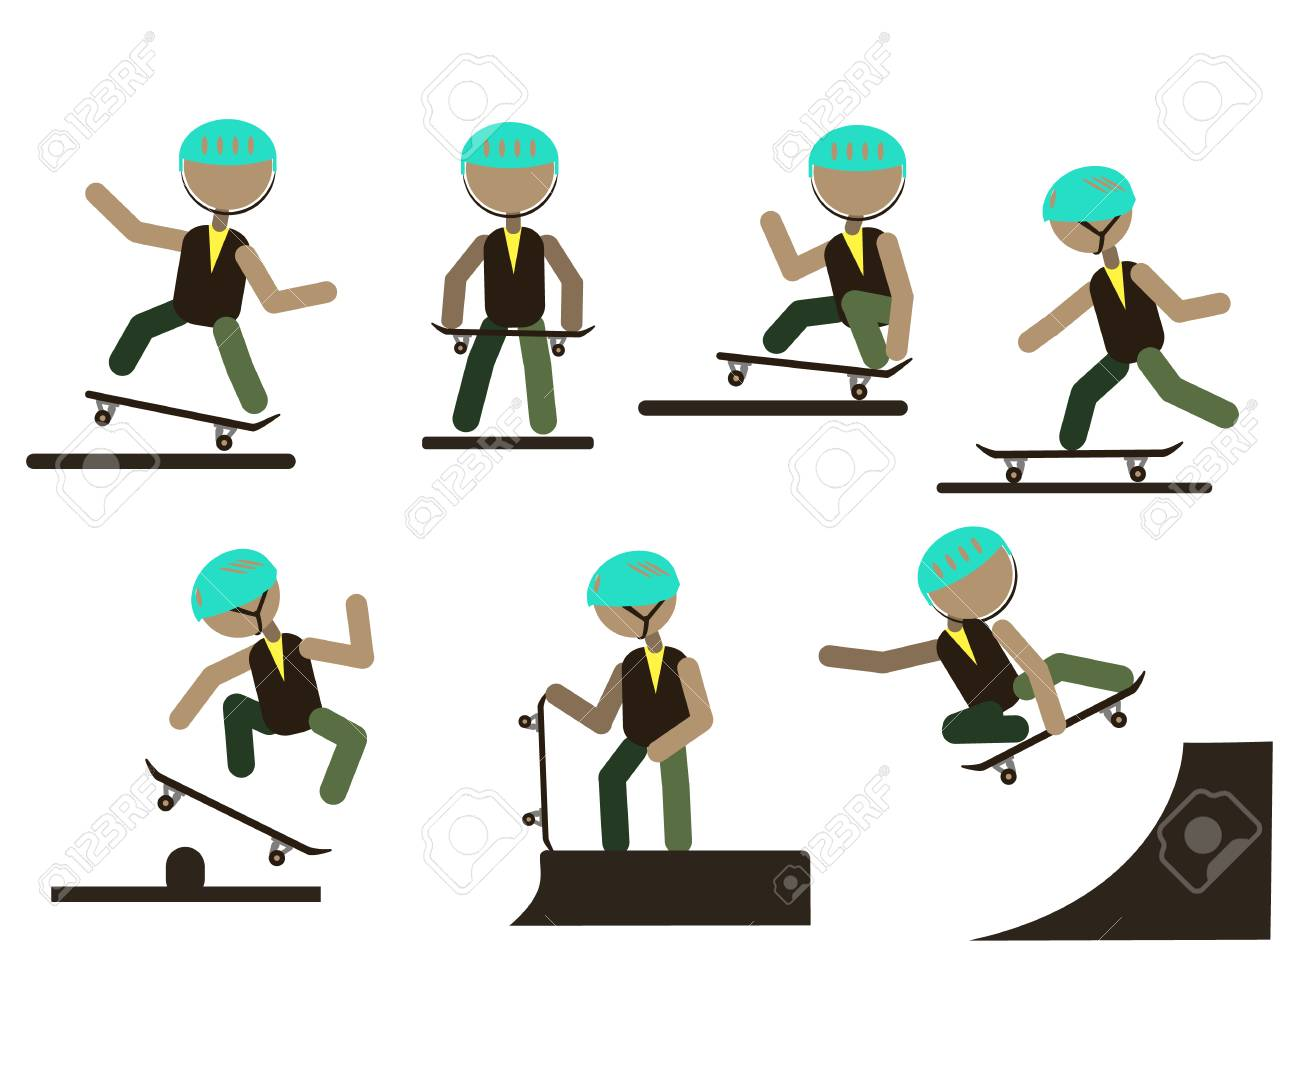 A set of characters engaged in active sport. Vector. - 103700306